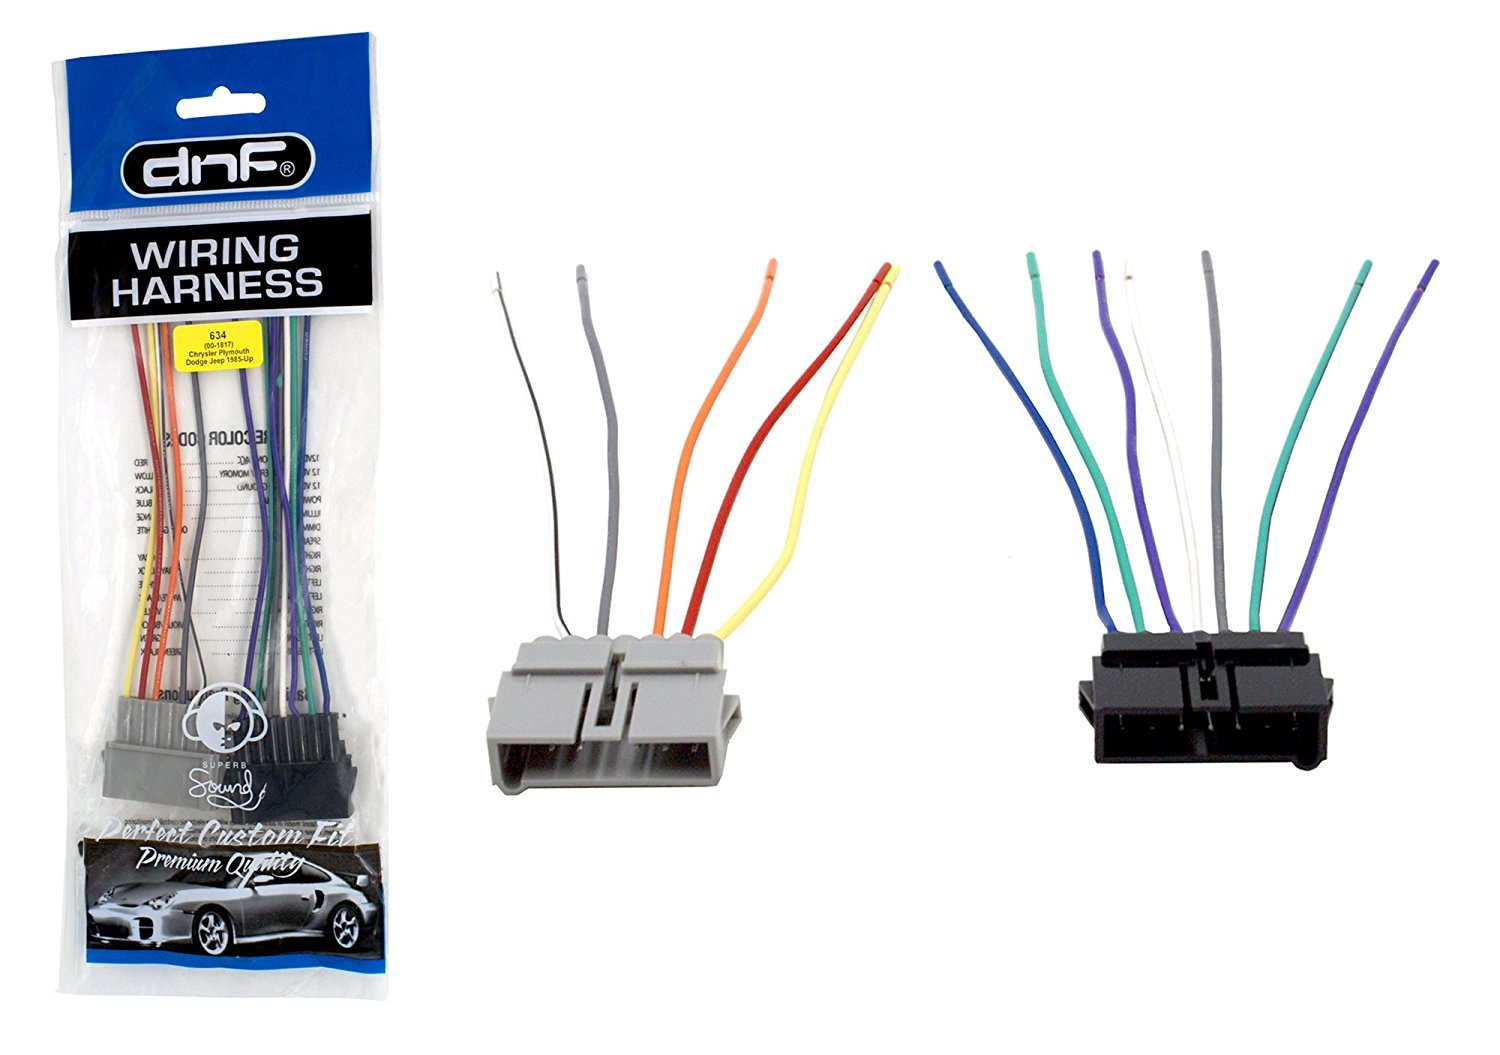 Dnf wiring harness for aftermarket radios stereos